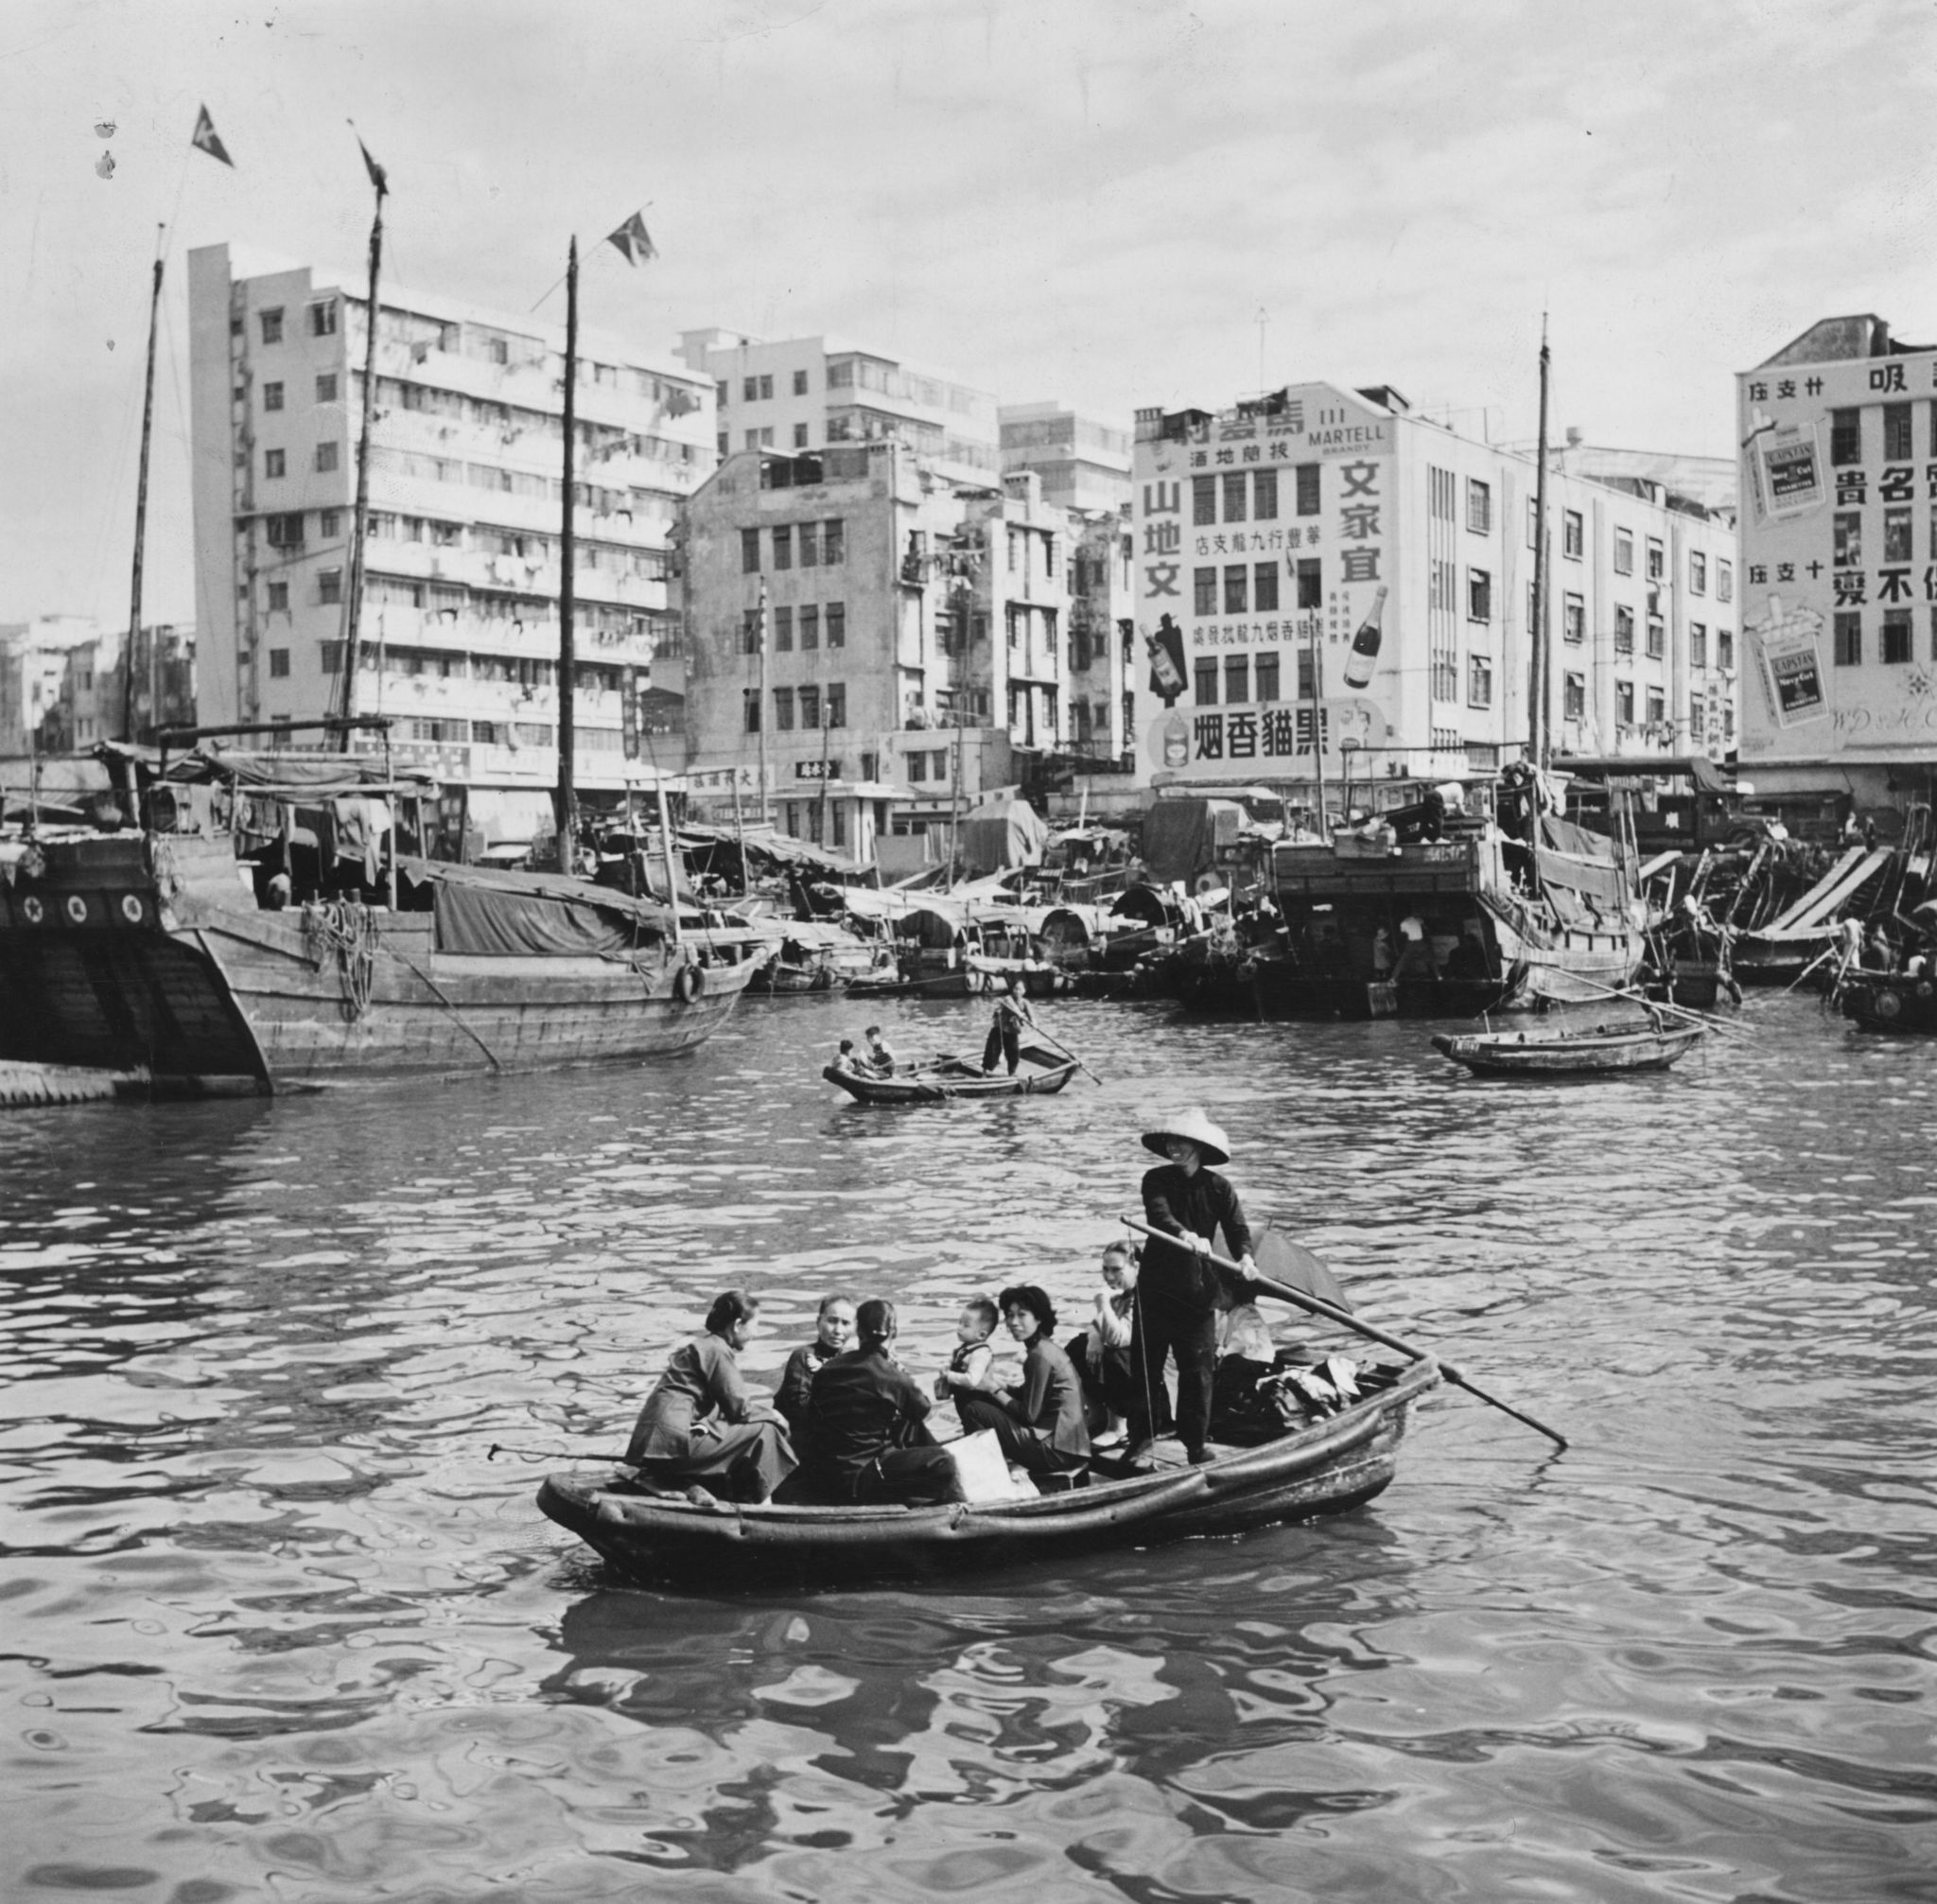 Hong Kong waterfront in the 1950s